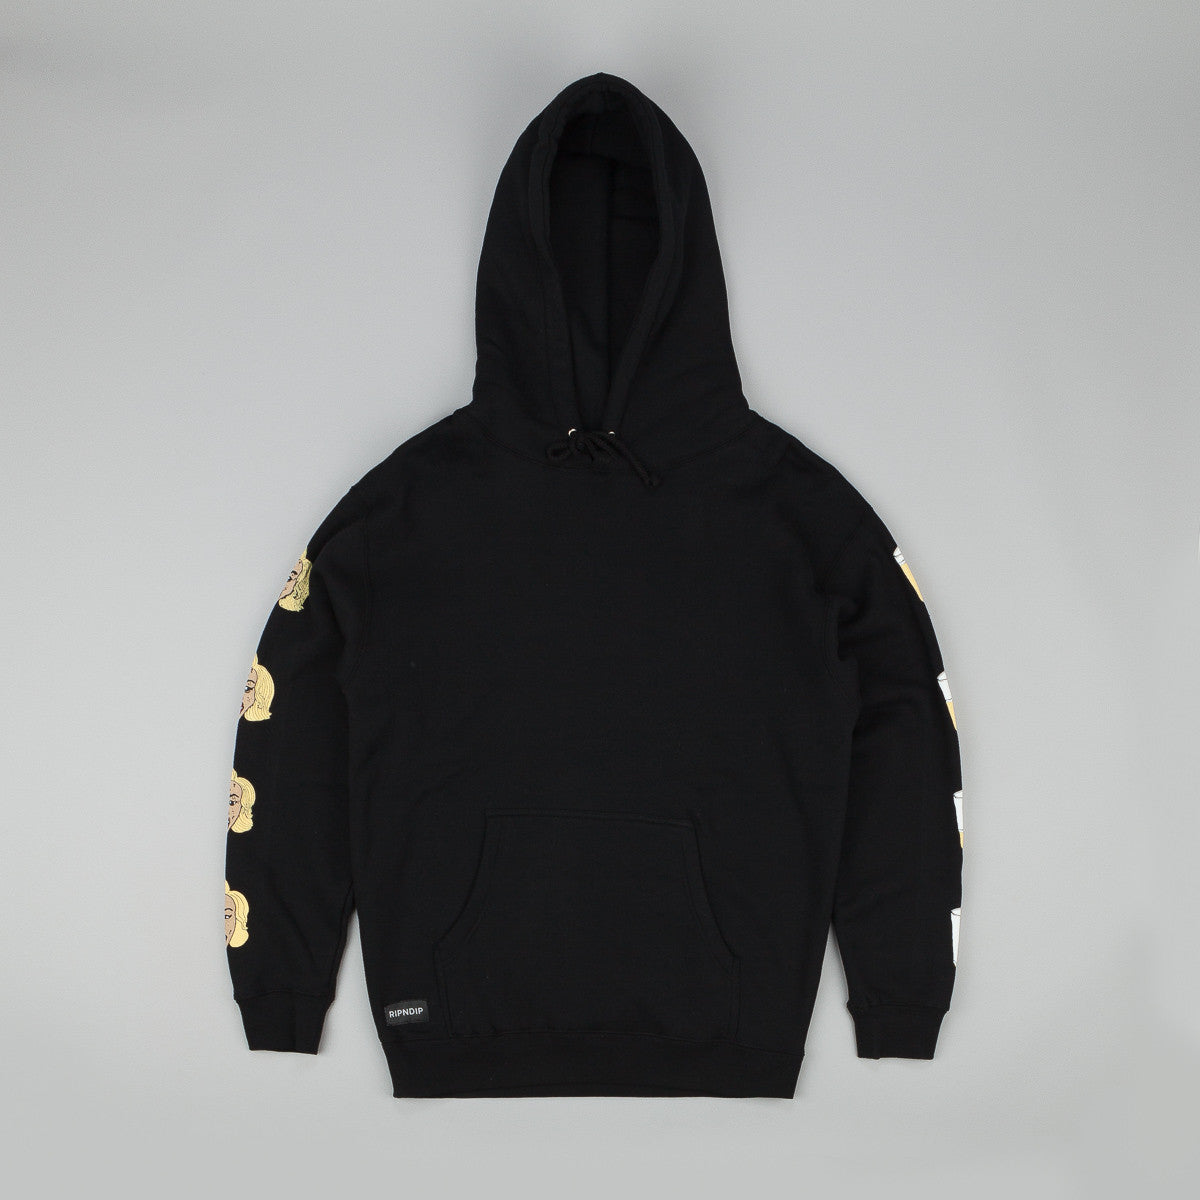 Rip N Dip Beer Me Hooded Sweatshirt